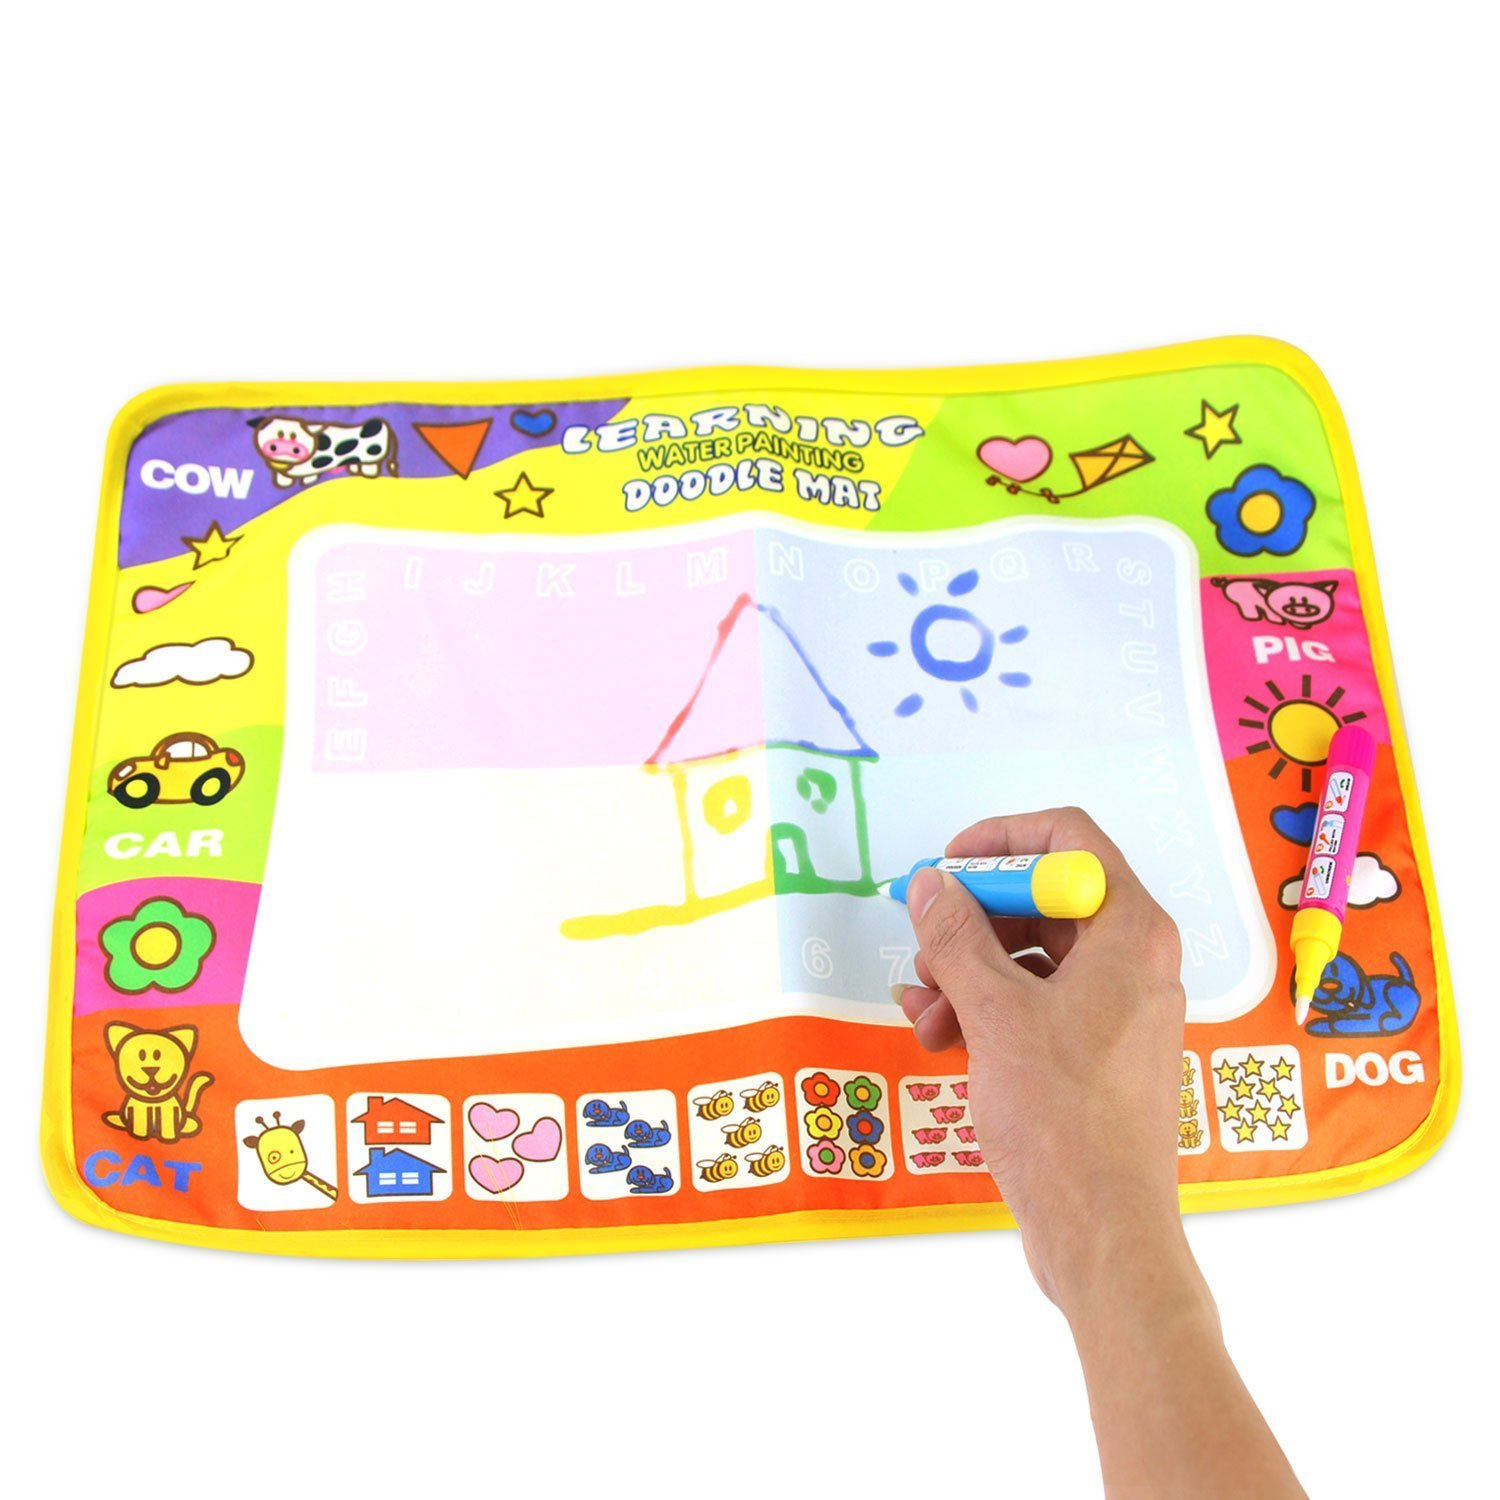 Tango Doodle drawing toys Travel Doodle Mat Magic Water Drawing Mats magic pen Educational toys for children toddlers kids Inches 31.5 x 23.62